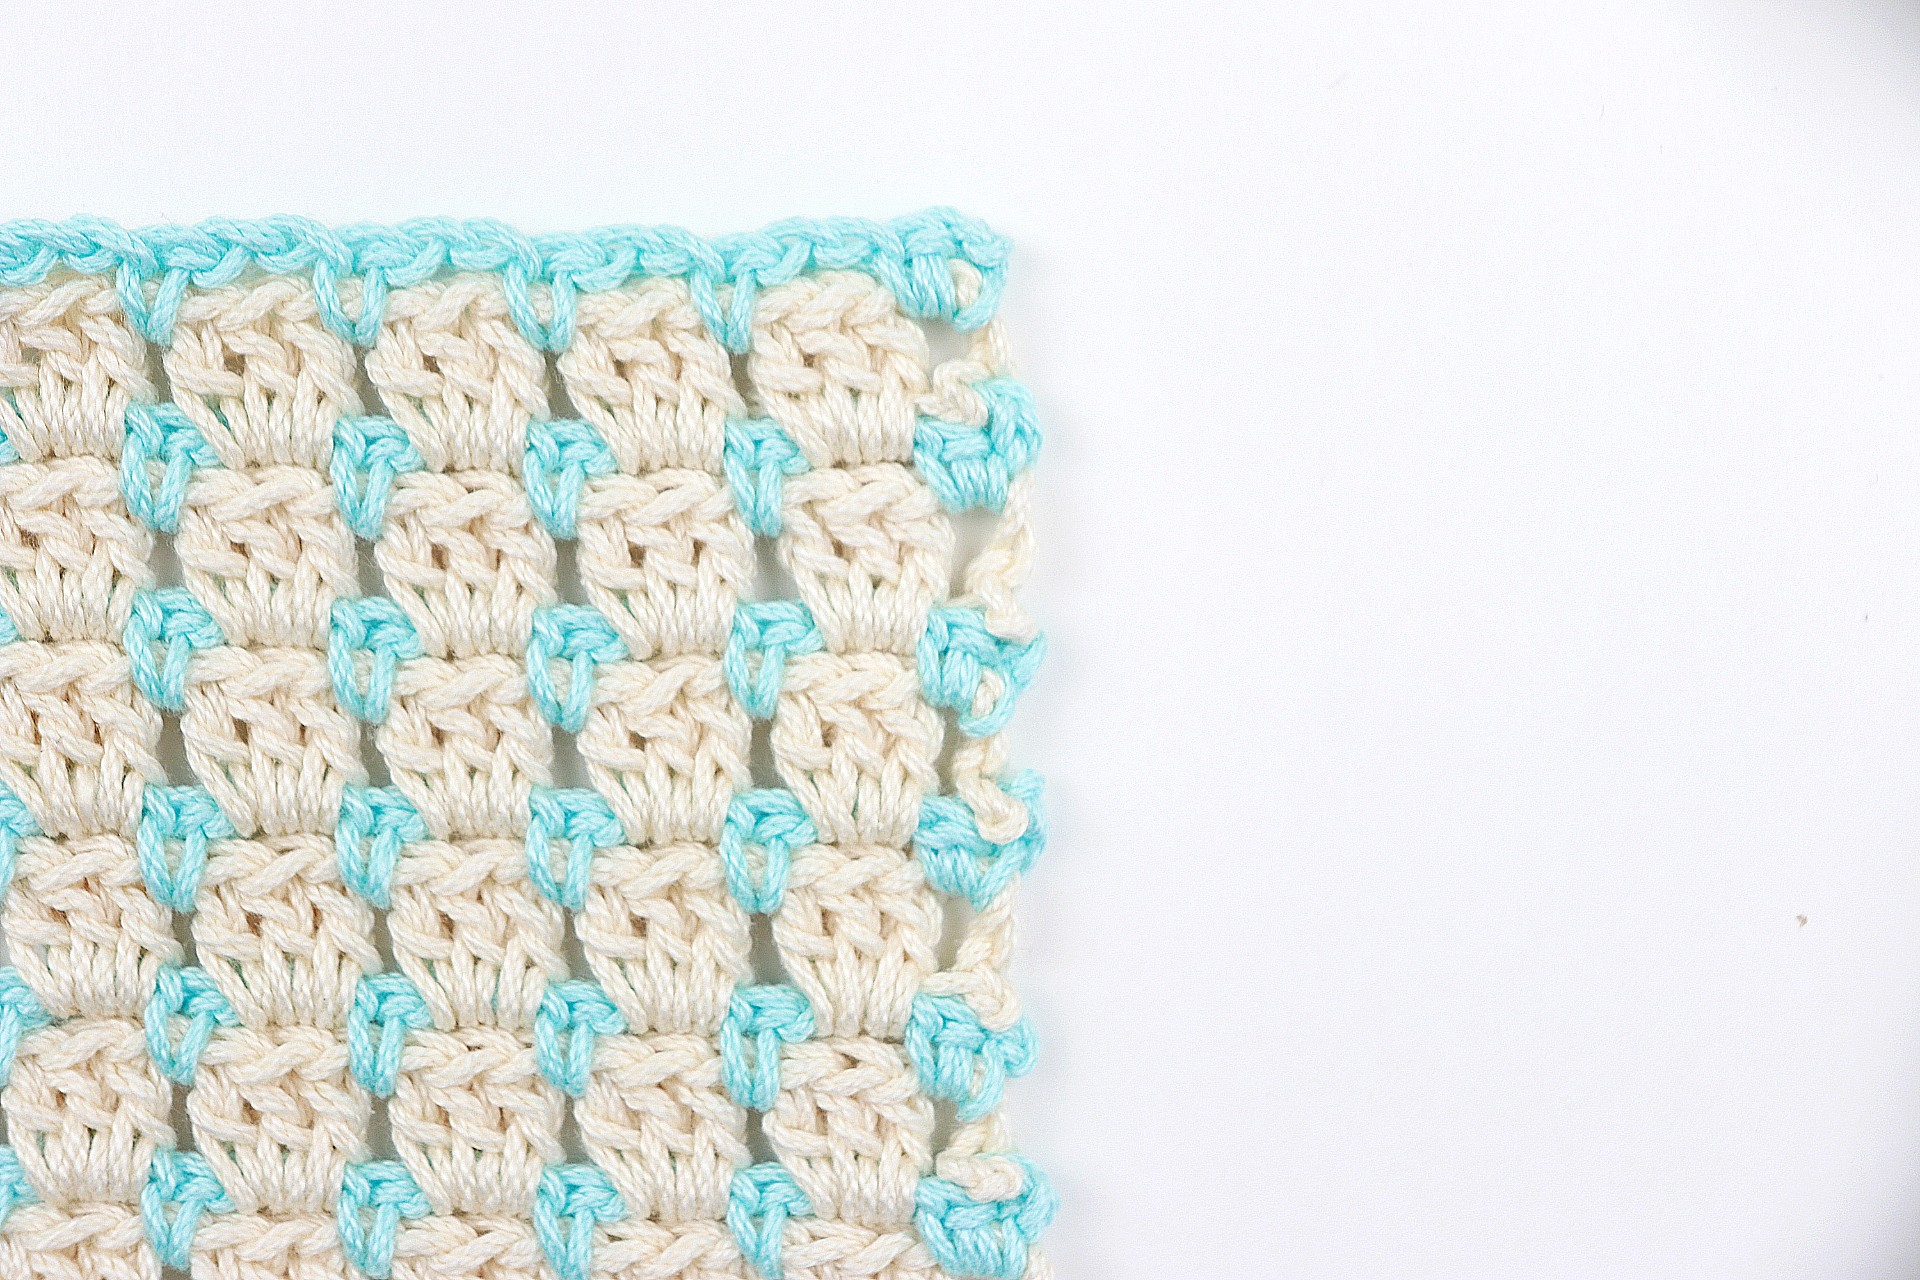 How To Crochet The Block Stitch | Cool Crochet Stitches (Picture & Video Tutorial)